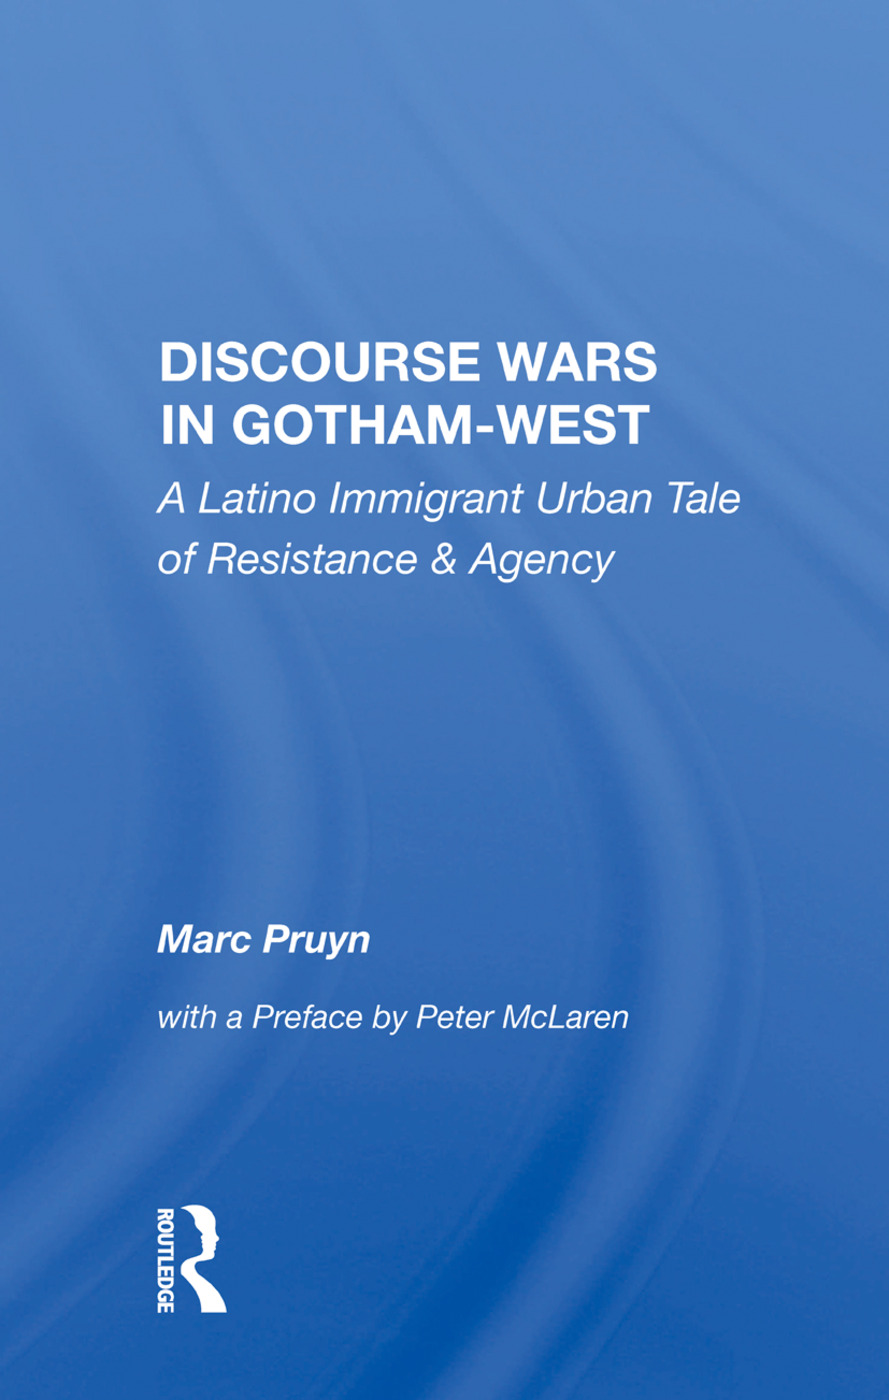 Discourse Wars in Gotham-West: A Latino Immigrant Urban Tale of Resistance & Agency book cover